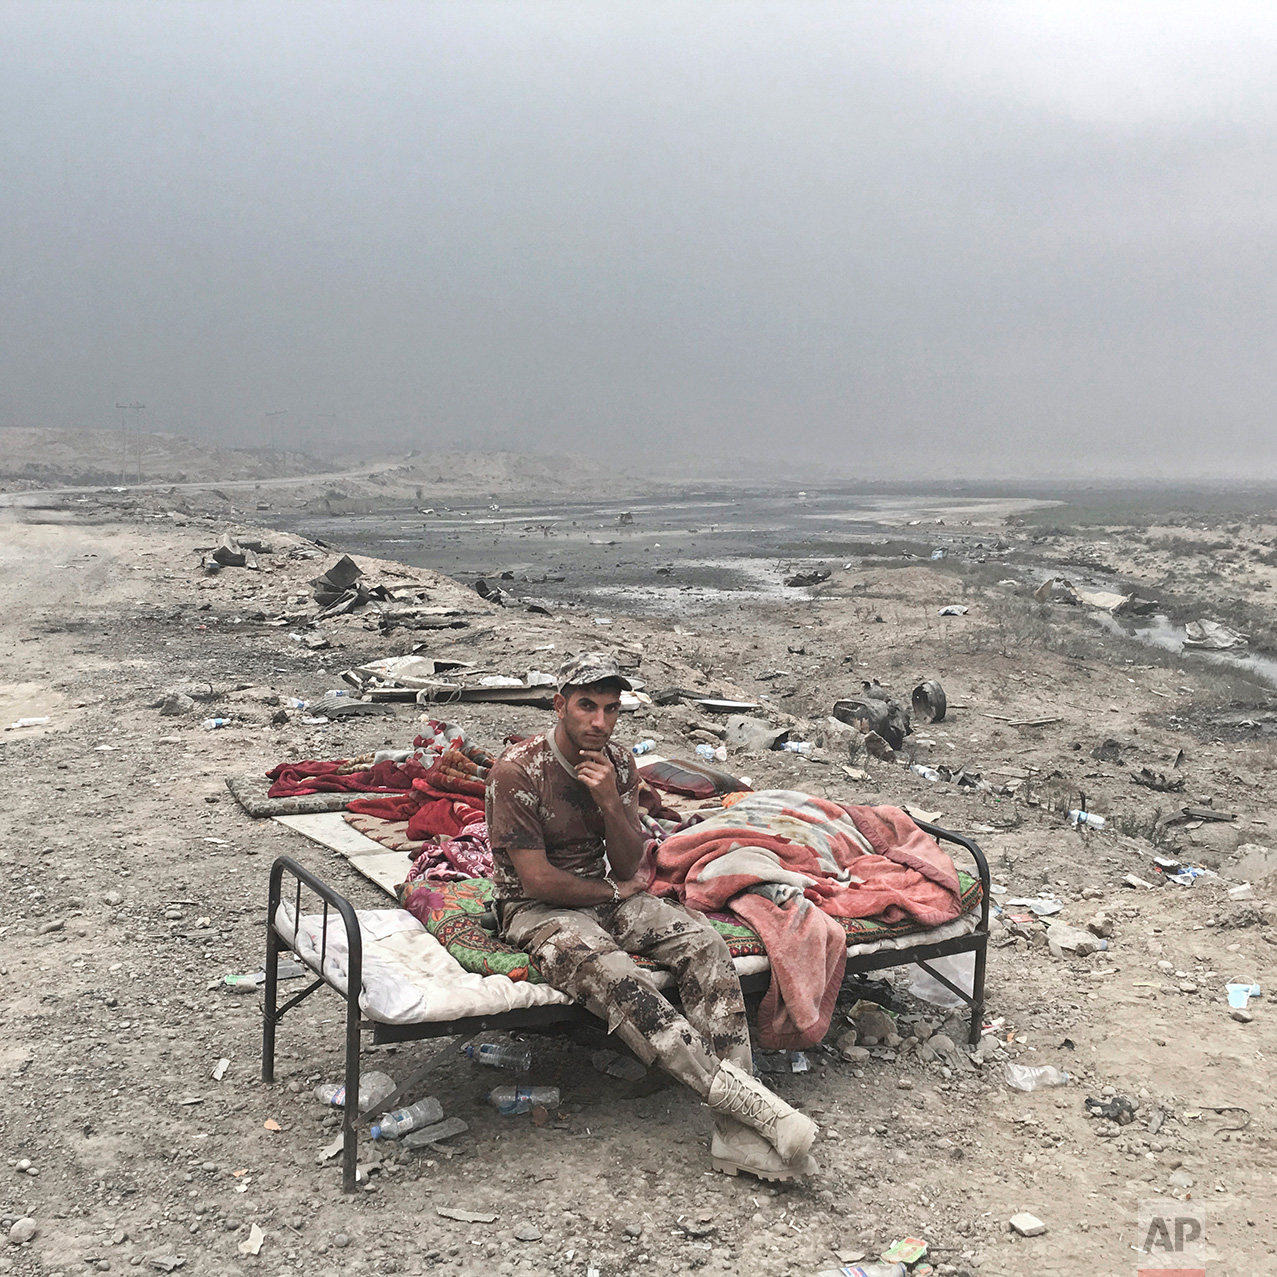 In this photo taken Wednesday, Oct. 26, 2016, Alaa Hashid, from Shura, Iraq, an Iraqi army soldier, poses for a portrait at a checkpoint in Qayara, some 50 kilometers south of Mosul, Iraq. The push to kick the Islamic State out of Mosul has brought together an eclectic mix of Iraqis, young and old, police and soldiers, and a variety of irregular uniforms and equipment. (AP Photo/Marko Drobnjakovic)